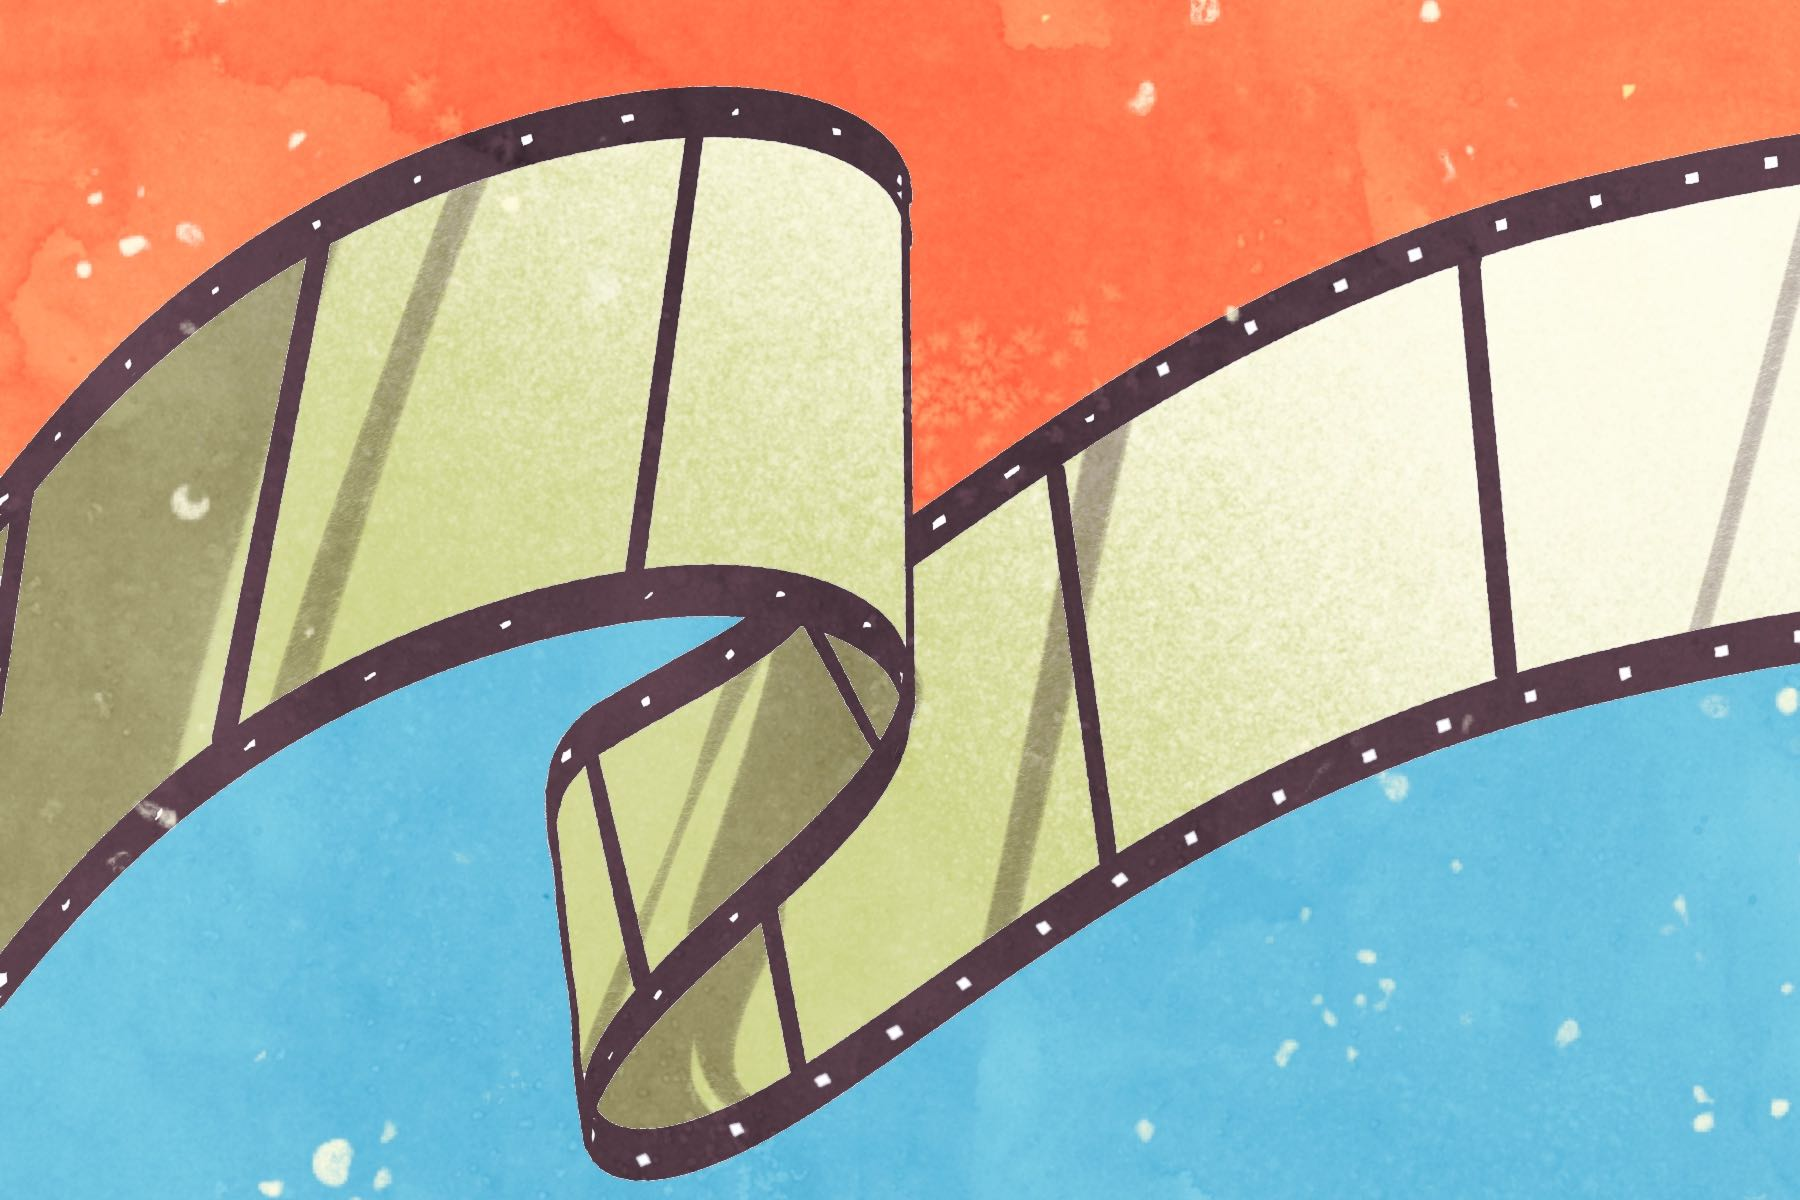 Illustration of film strip in article about app Letterboxd